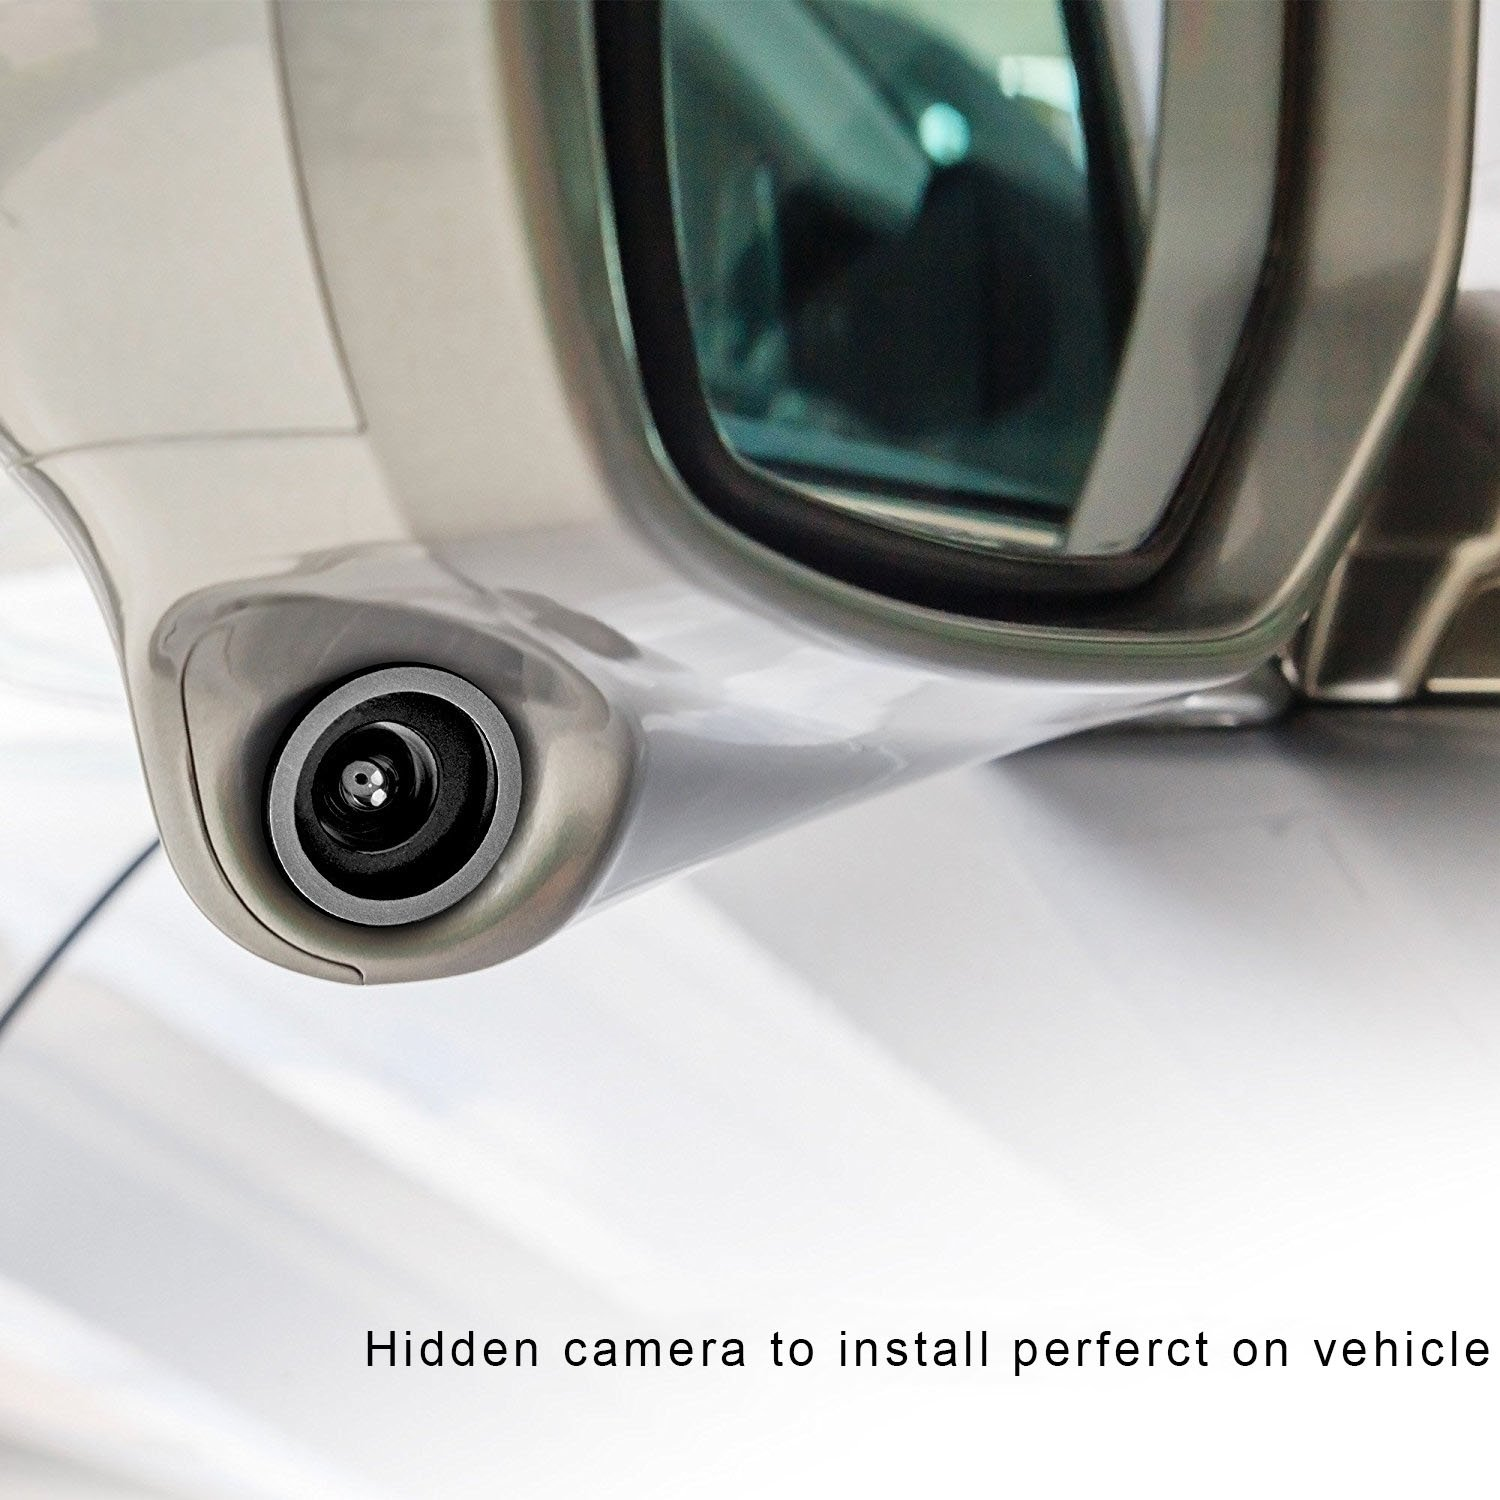 170 degree Viewing Angle Universal Car Rear View Side View Front View /& Security Spy Camera suitable for any car models HAYA SanrenGo hidden Mini Backup Camera